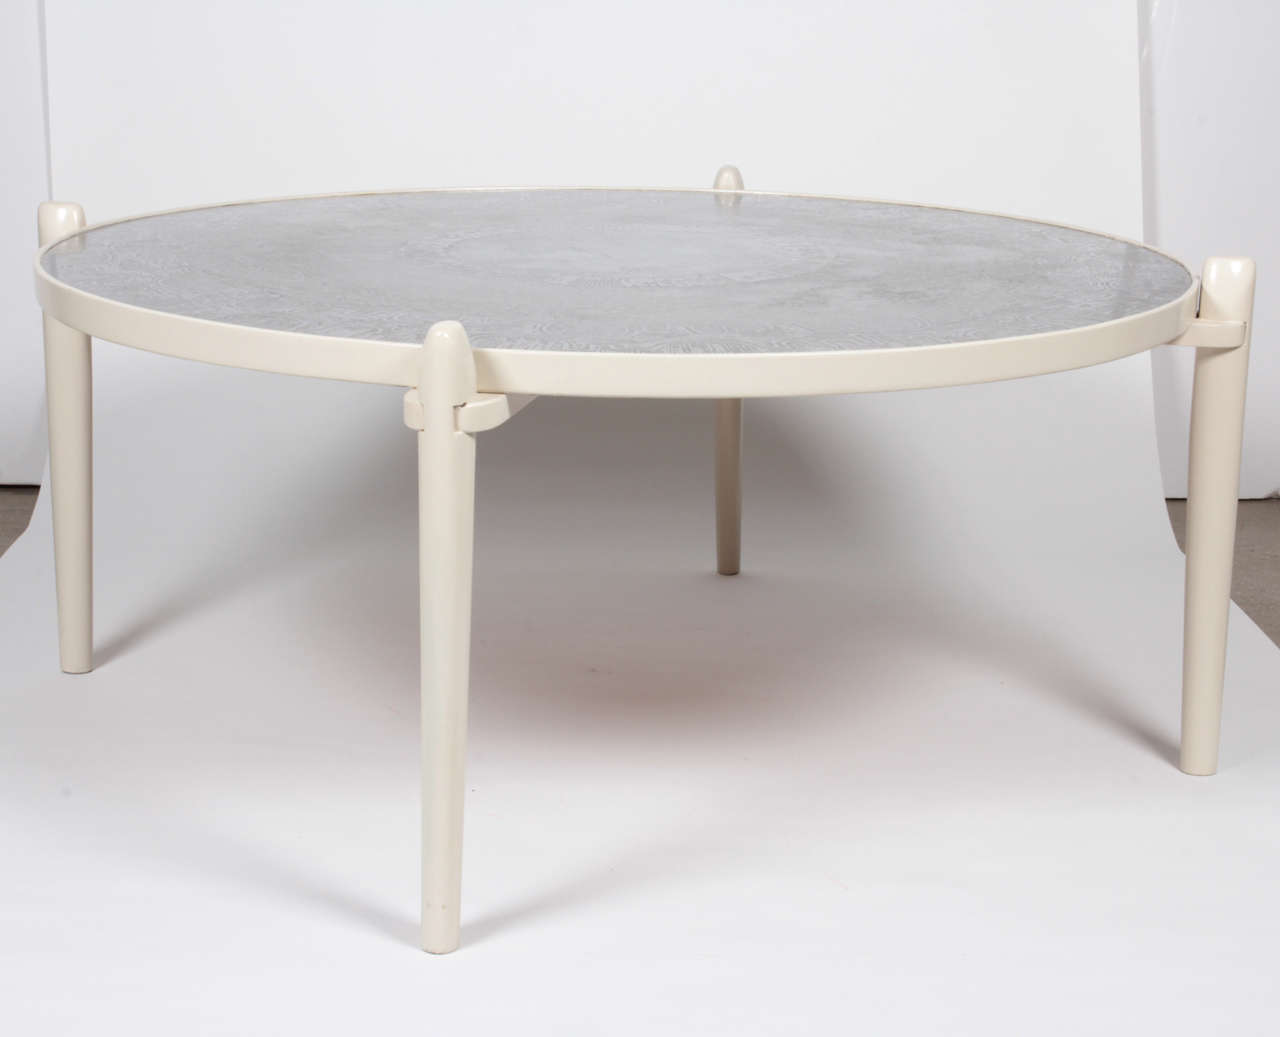 Circular Coffee Table Etched Aluminum, White Feet In Wood.